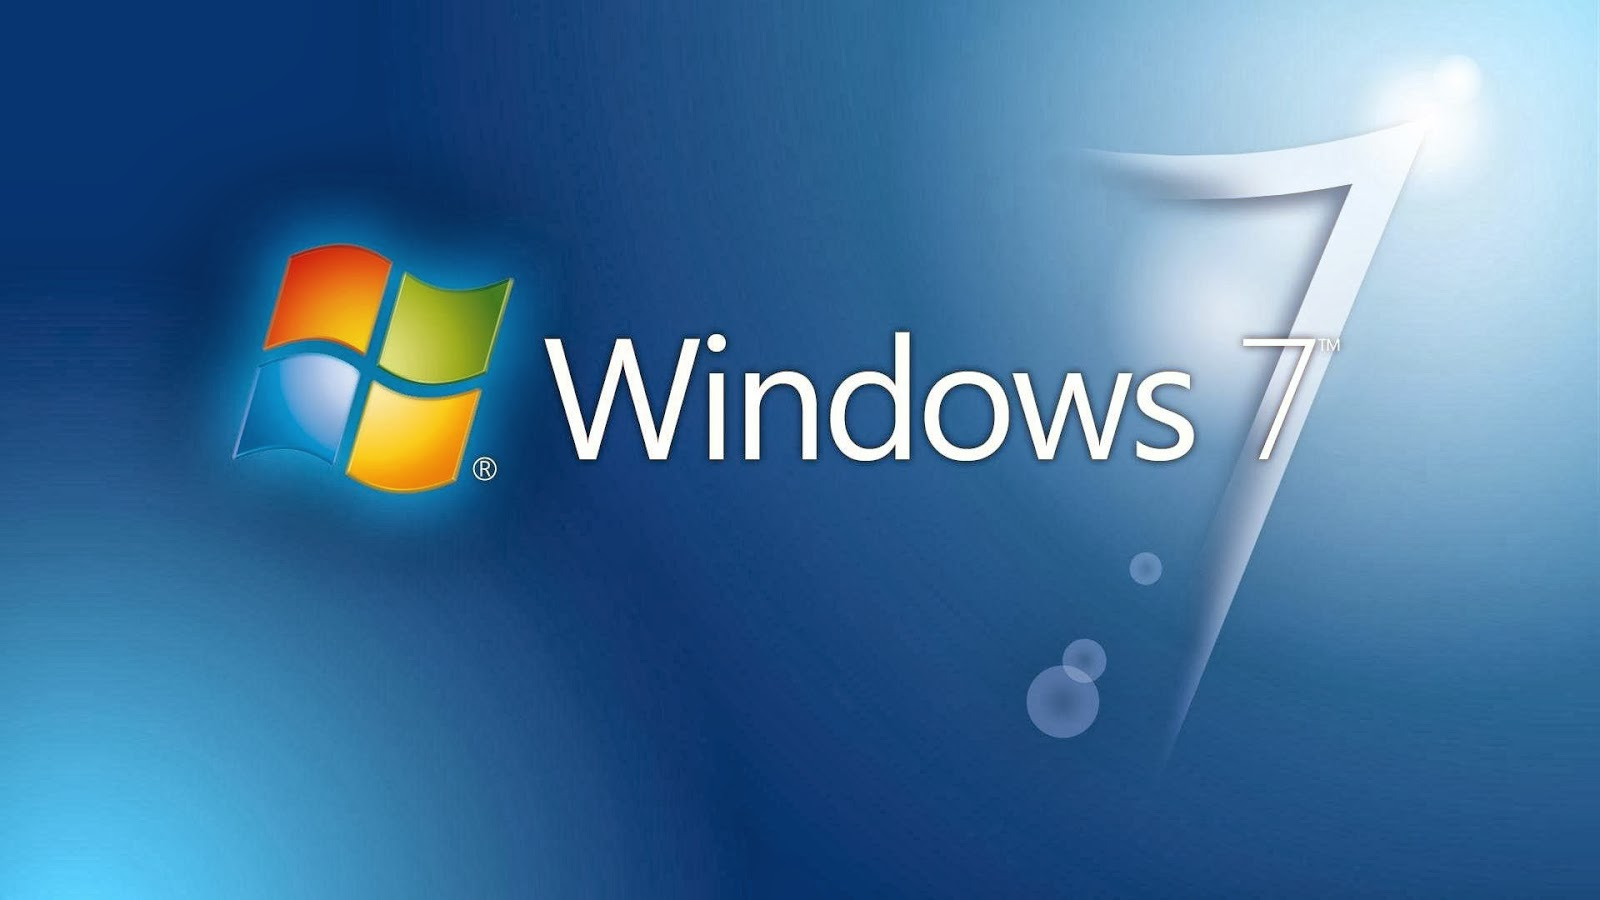 Windows7 1080p HQ Wallpapers